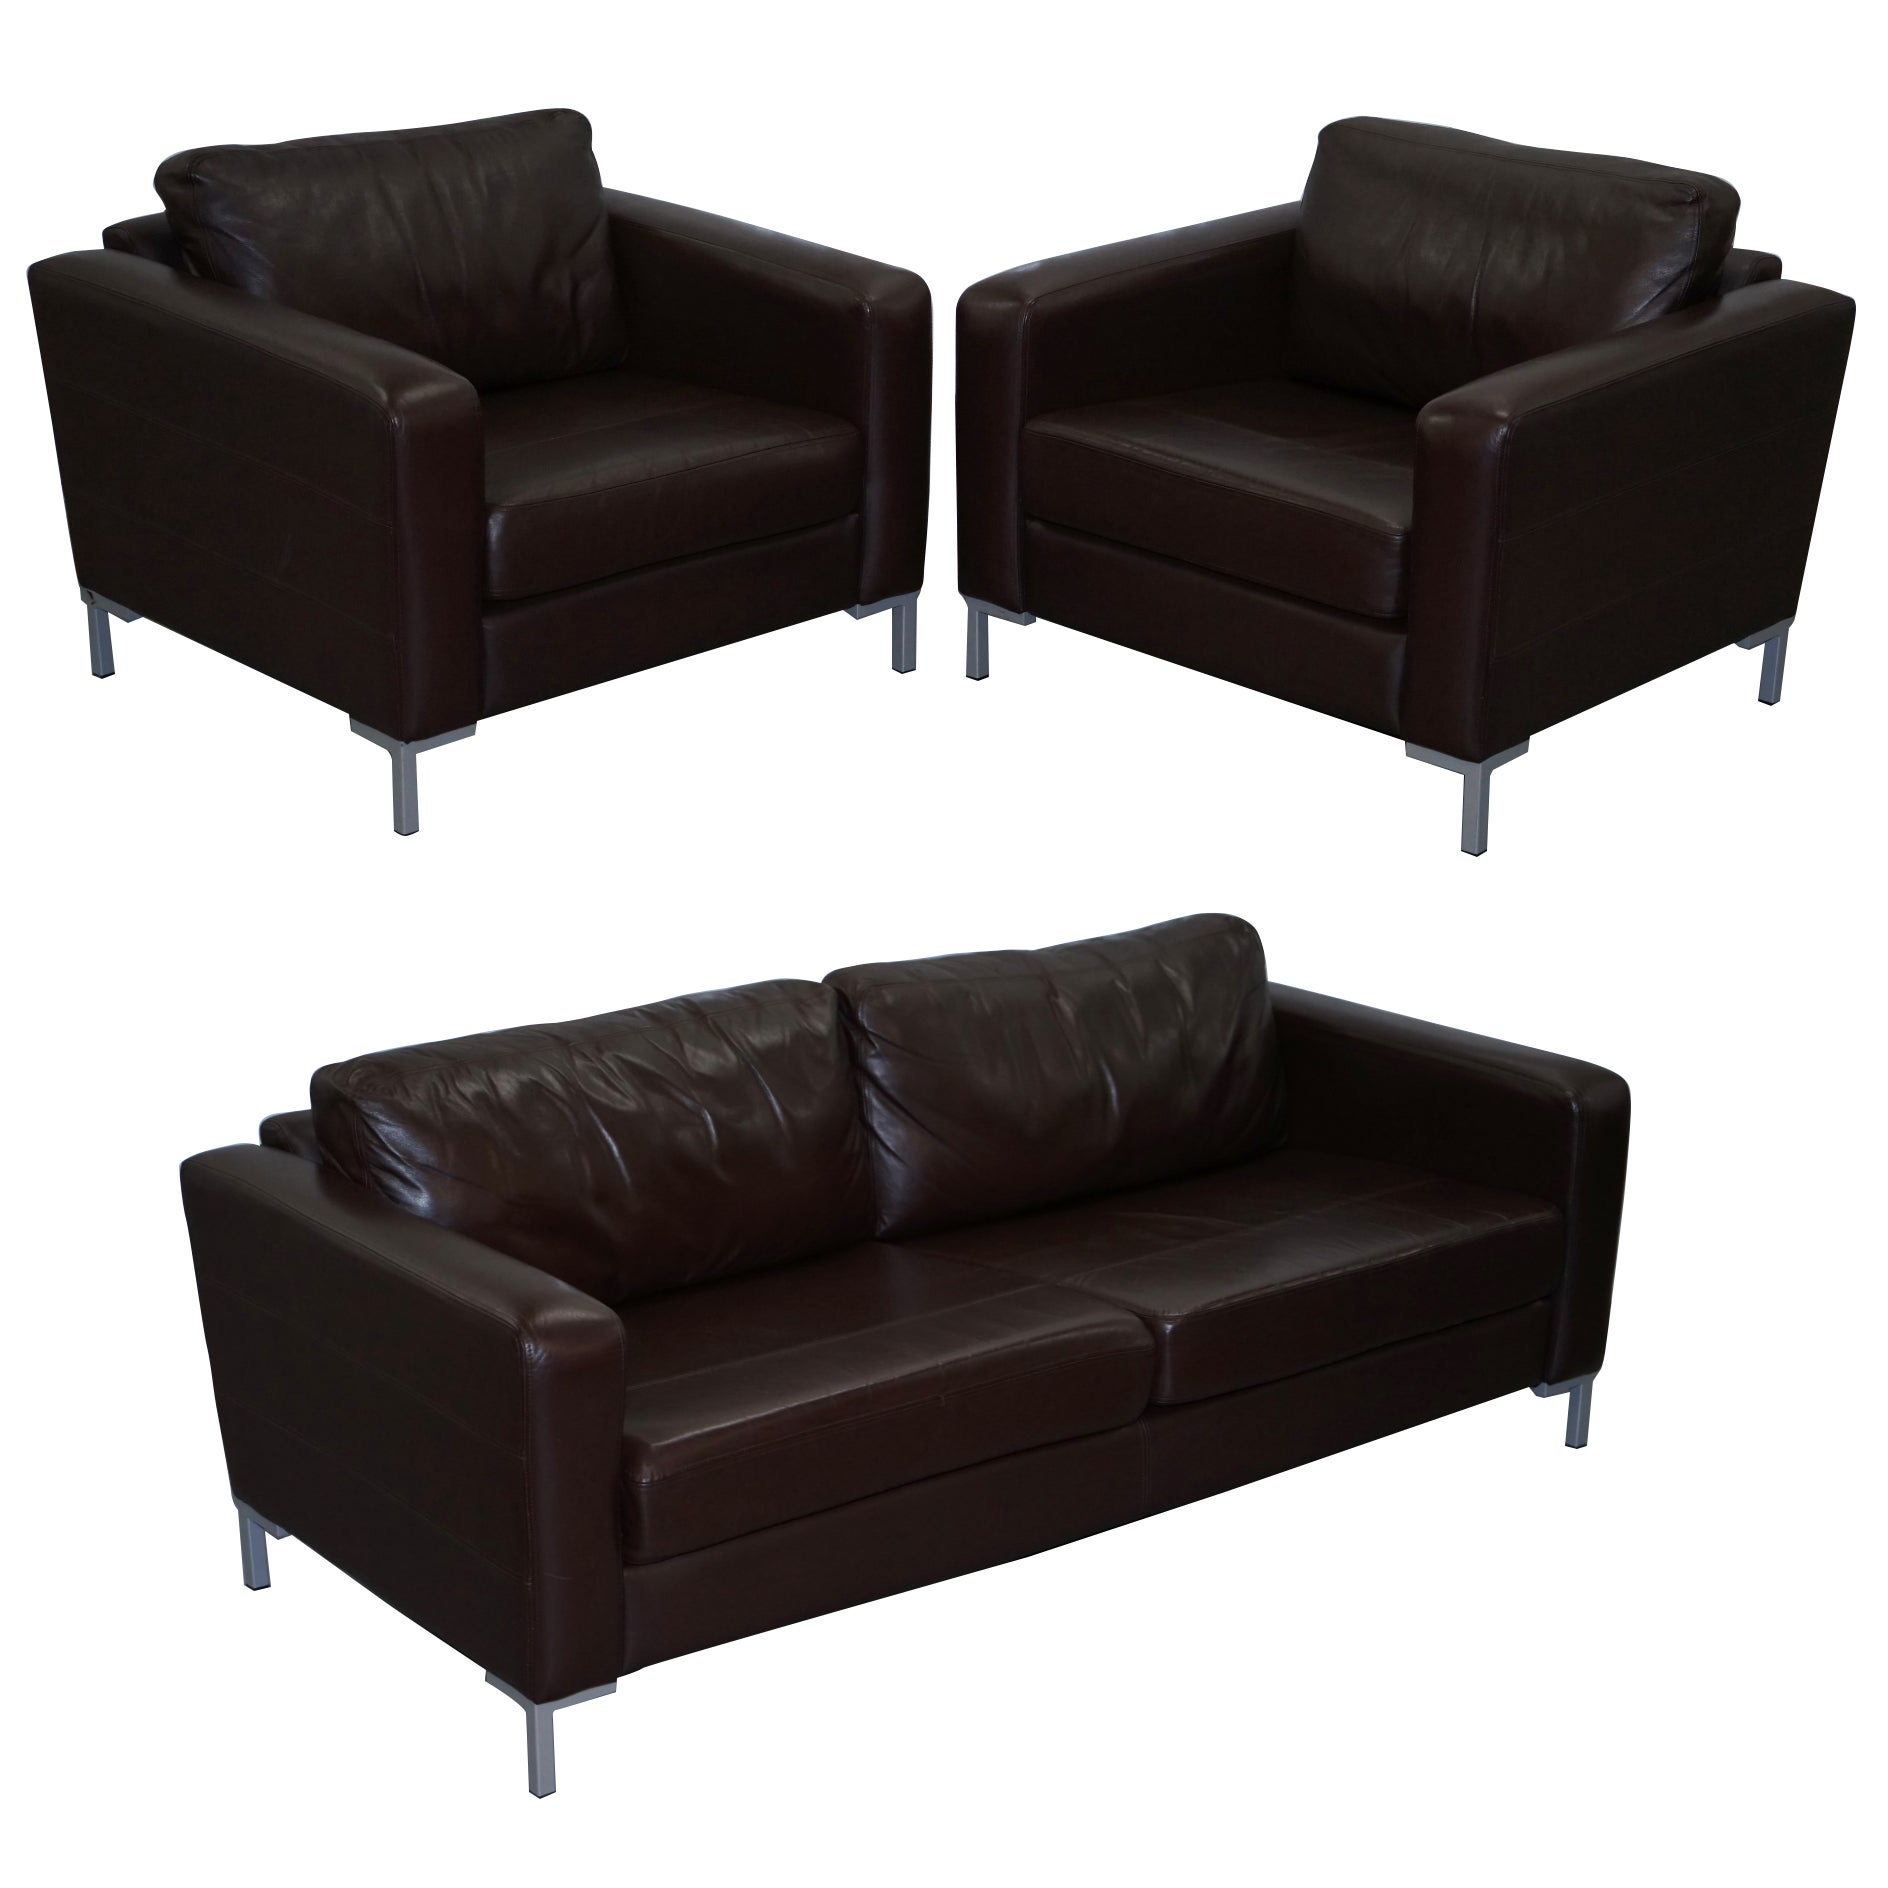 John Lewis Siren Aniline Brown Leather Suite Pair Armchairs Three Seat Sofa For At 1stdibs